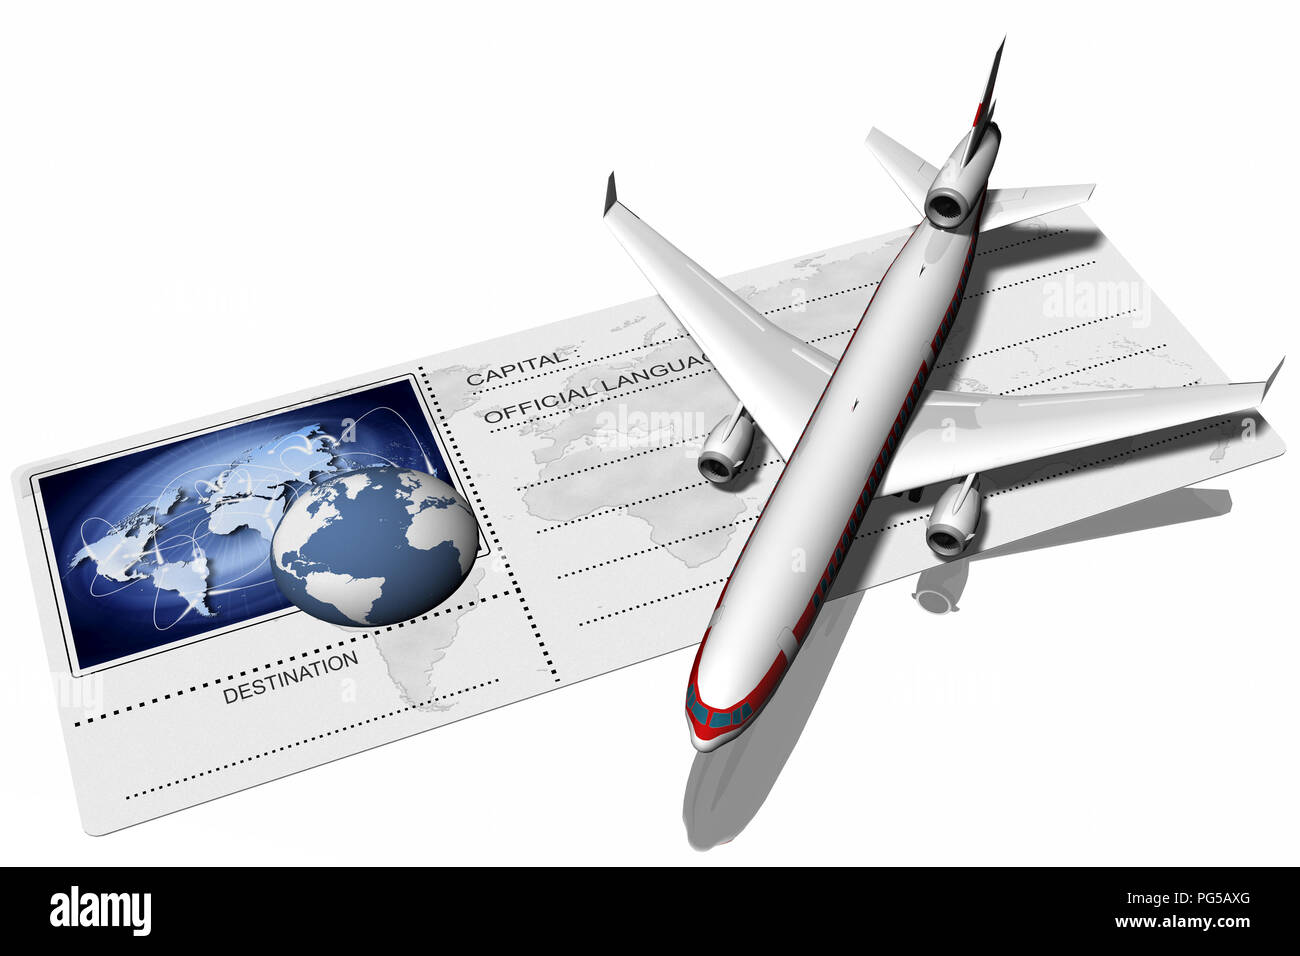 3D illustration. Airplane resting on airfare depicted with the world and its possible connections. - Stock Image